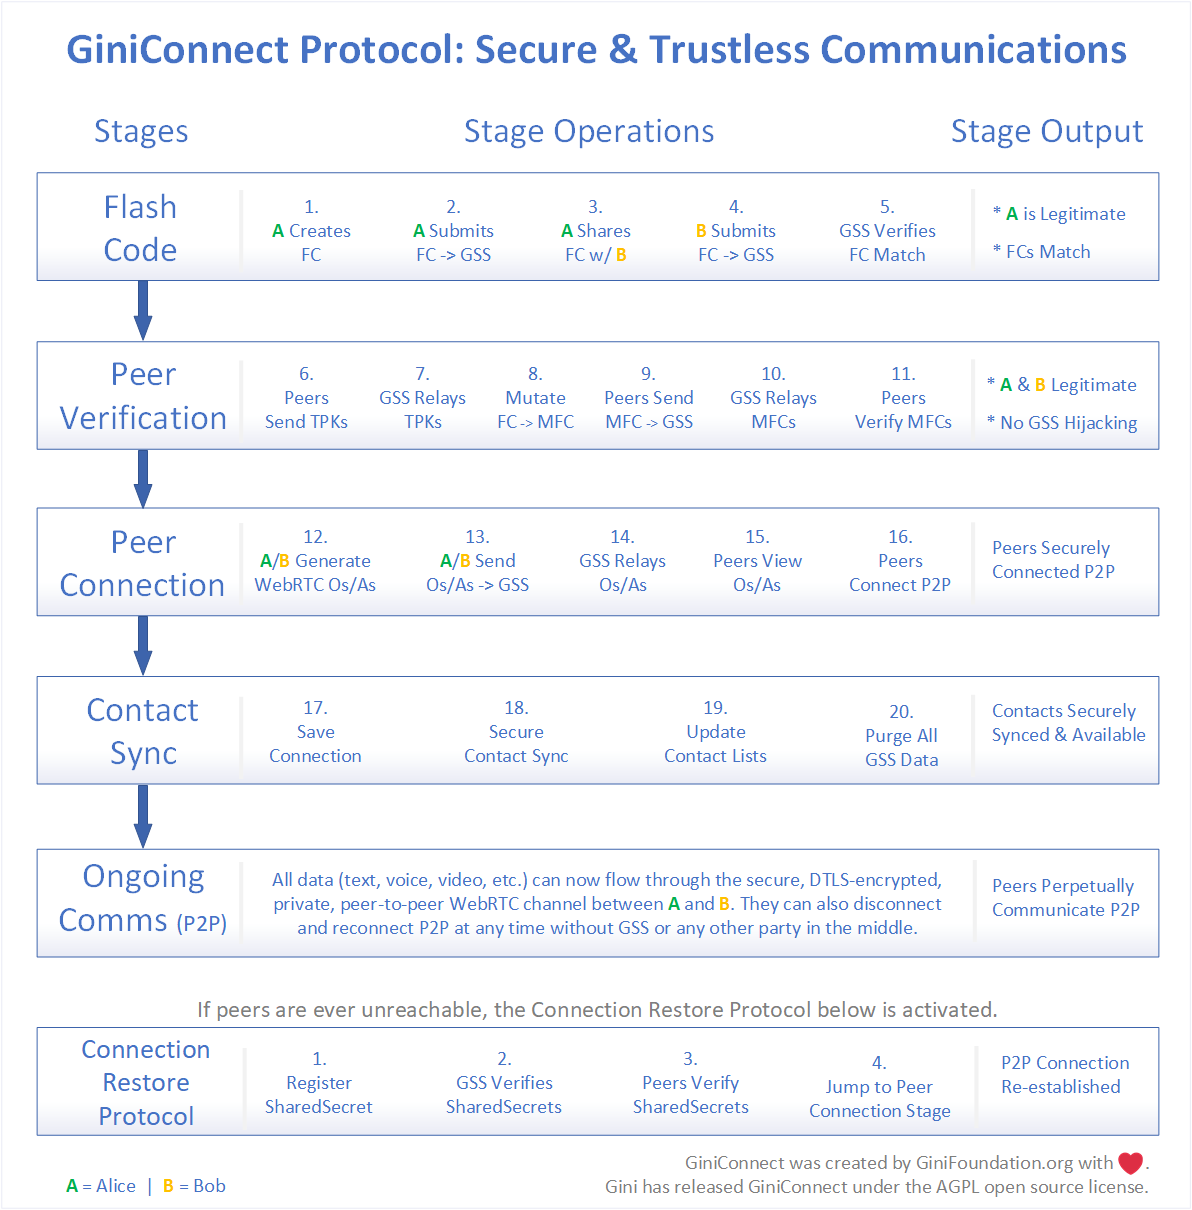 GiniConnect Protocol: Secure & Trustless Communications by GiniFoundation.org